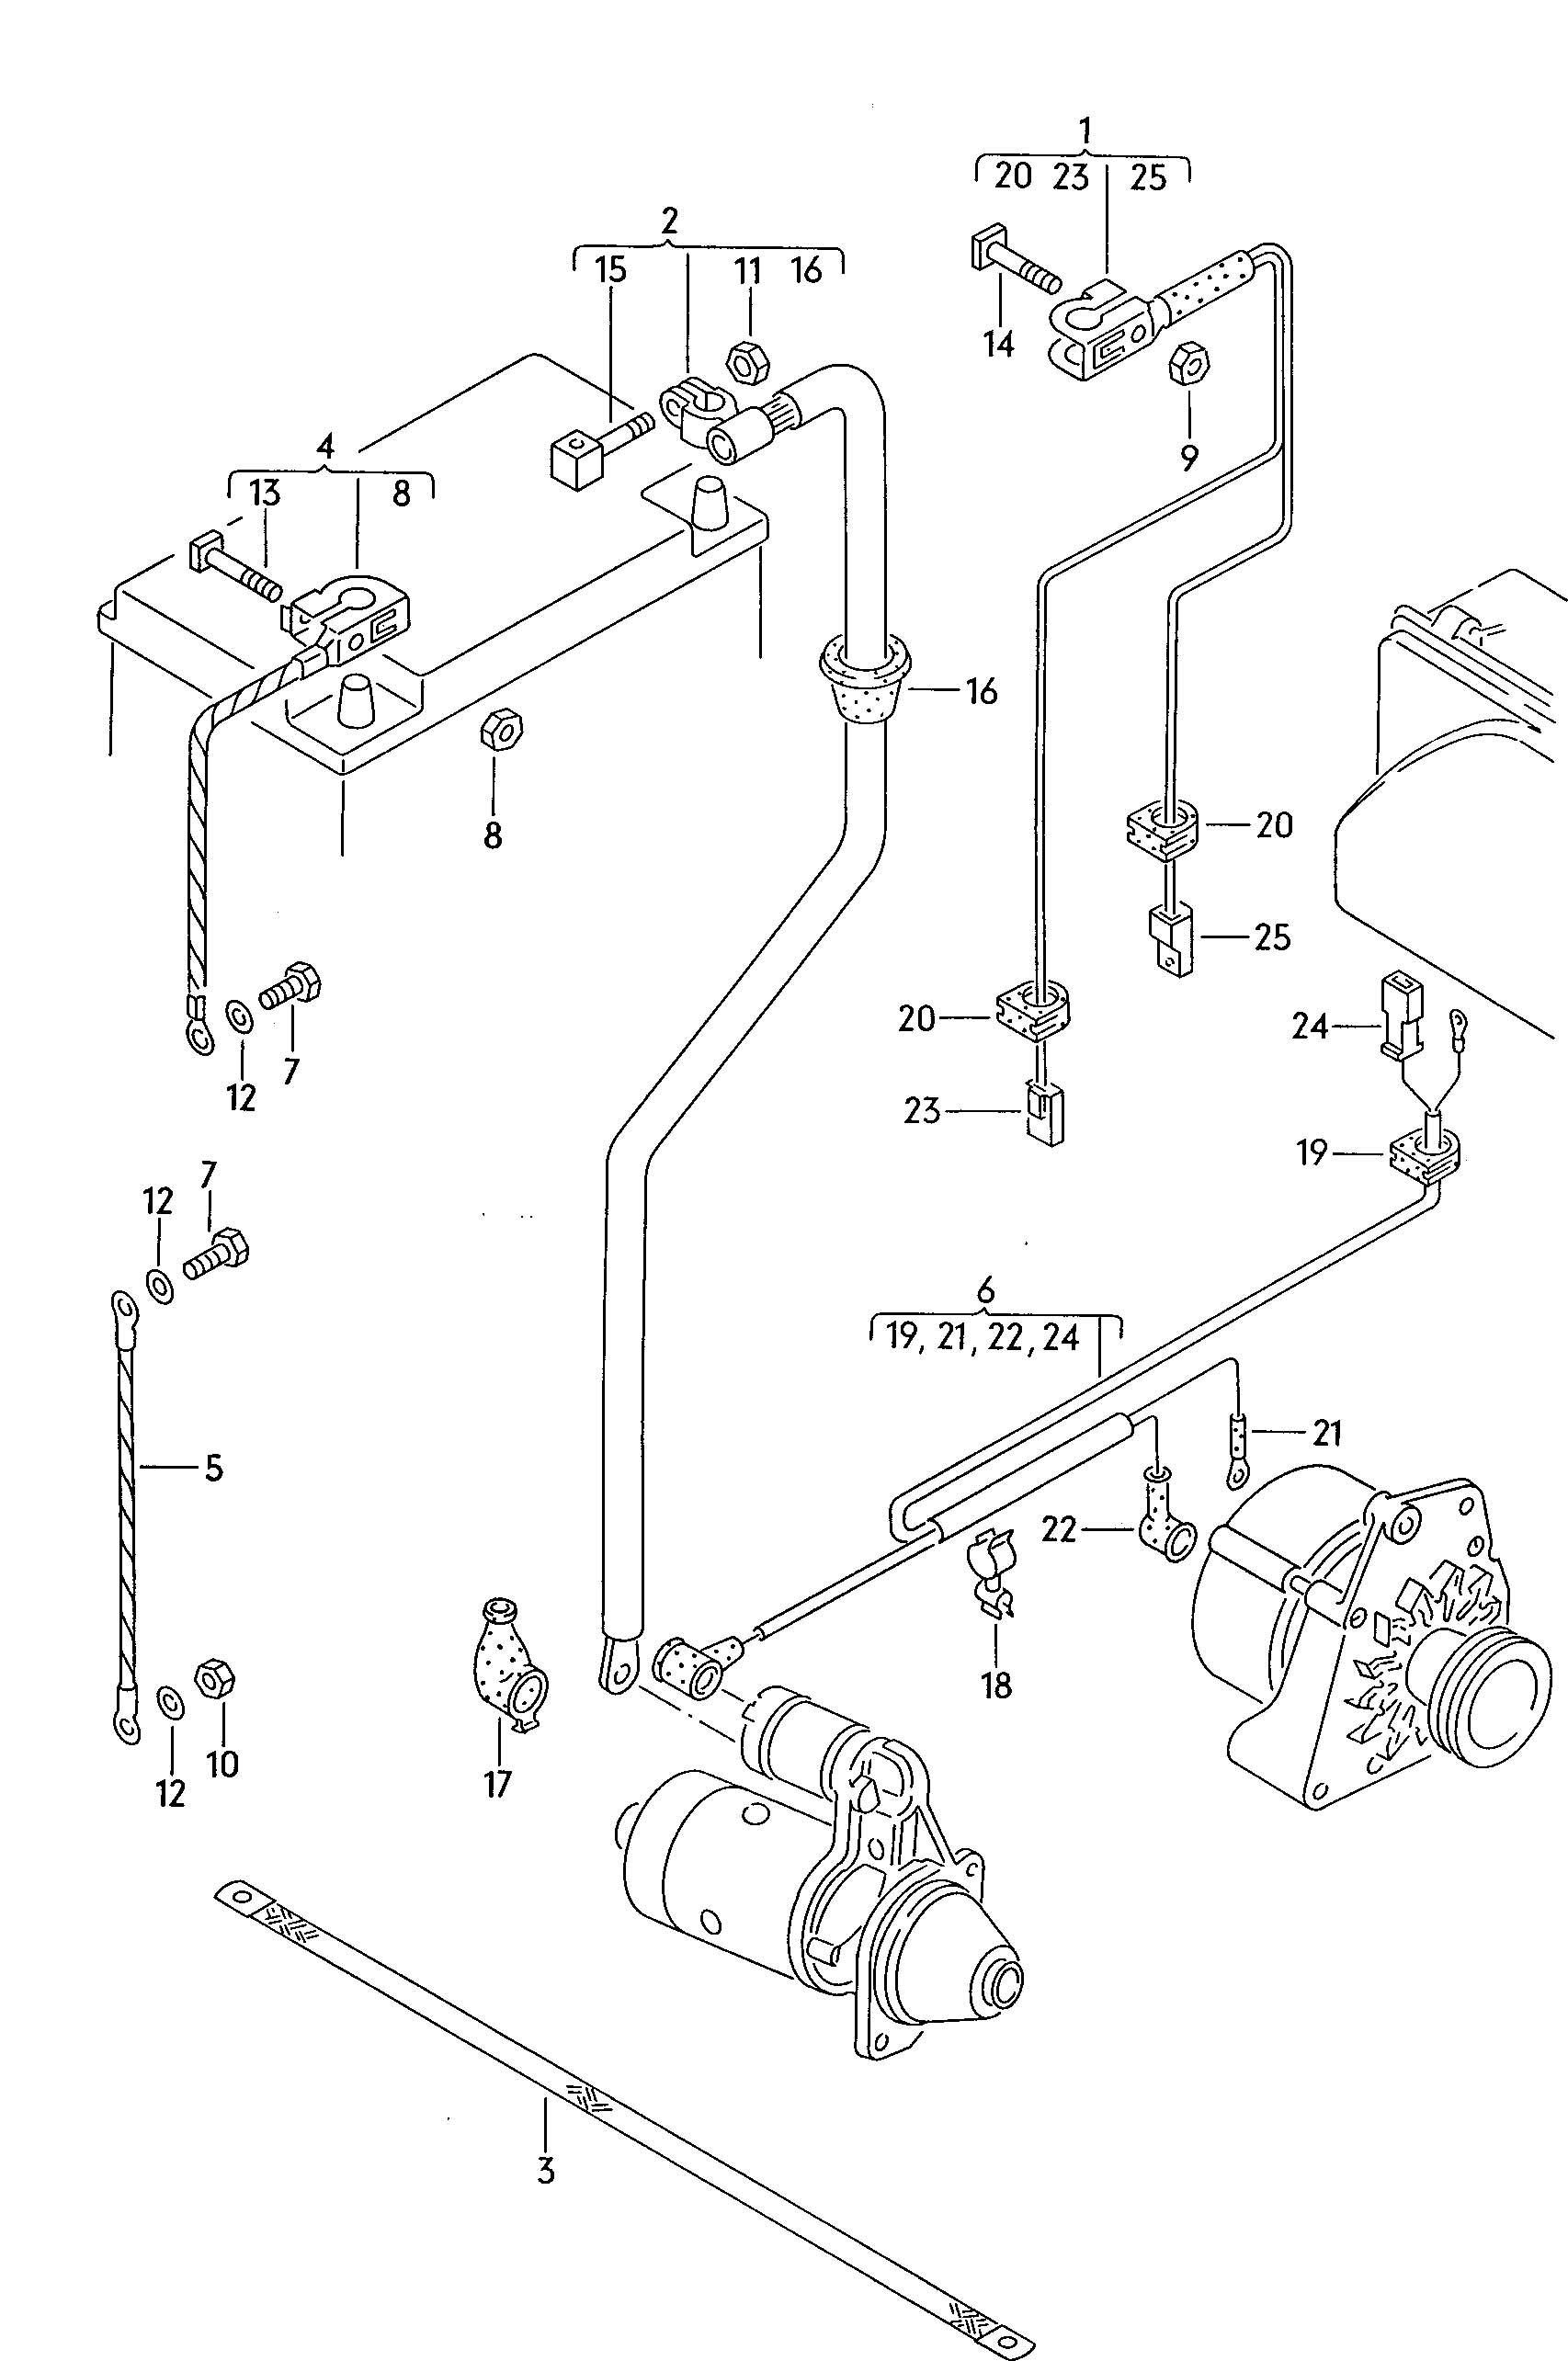 vw tdi engine fuse box  diagrams  auto fuse box diagram